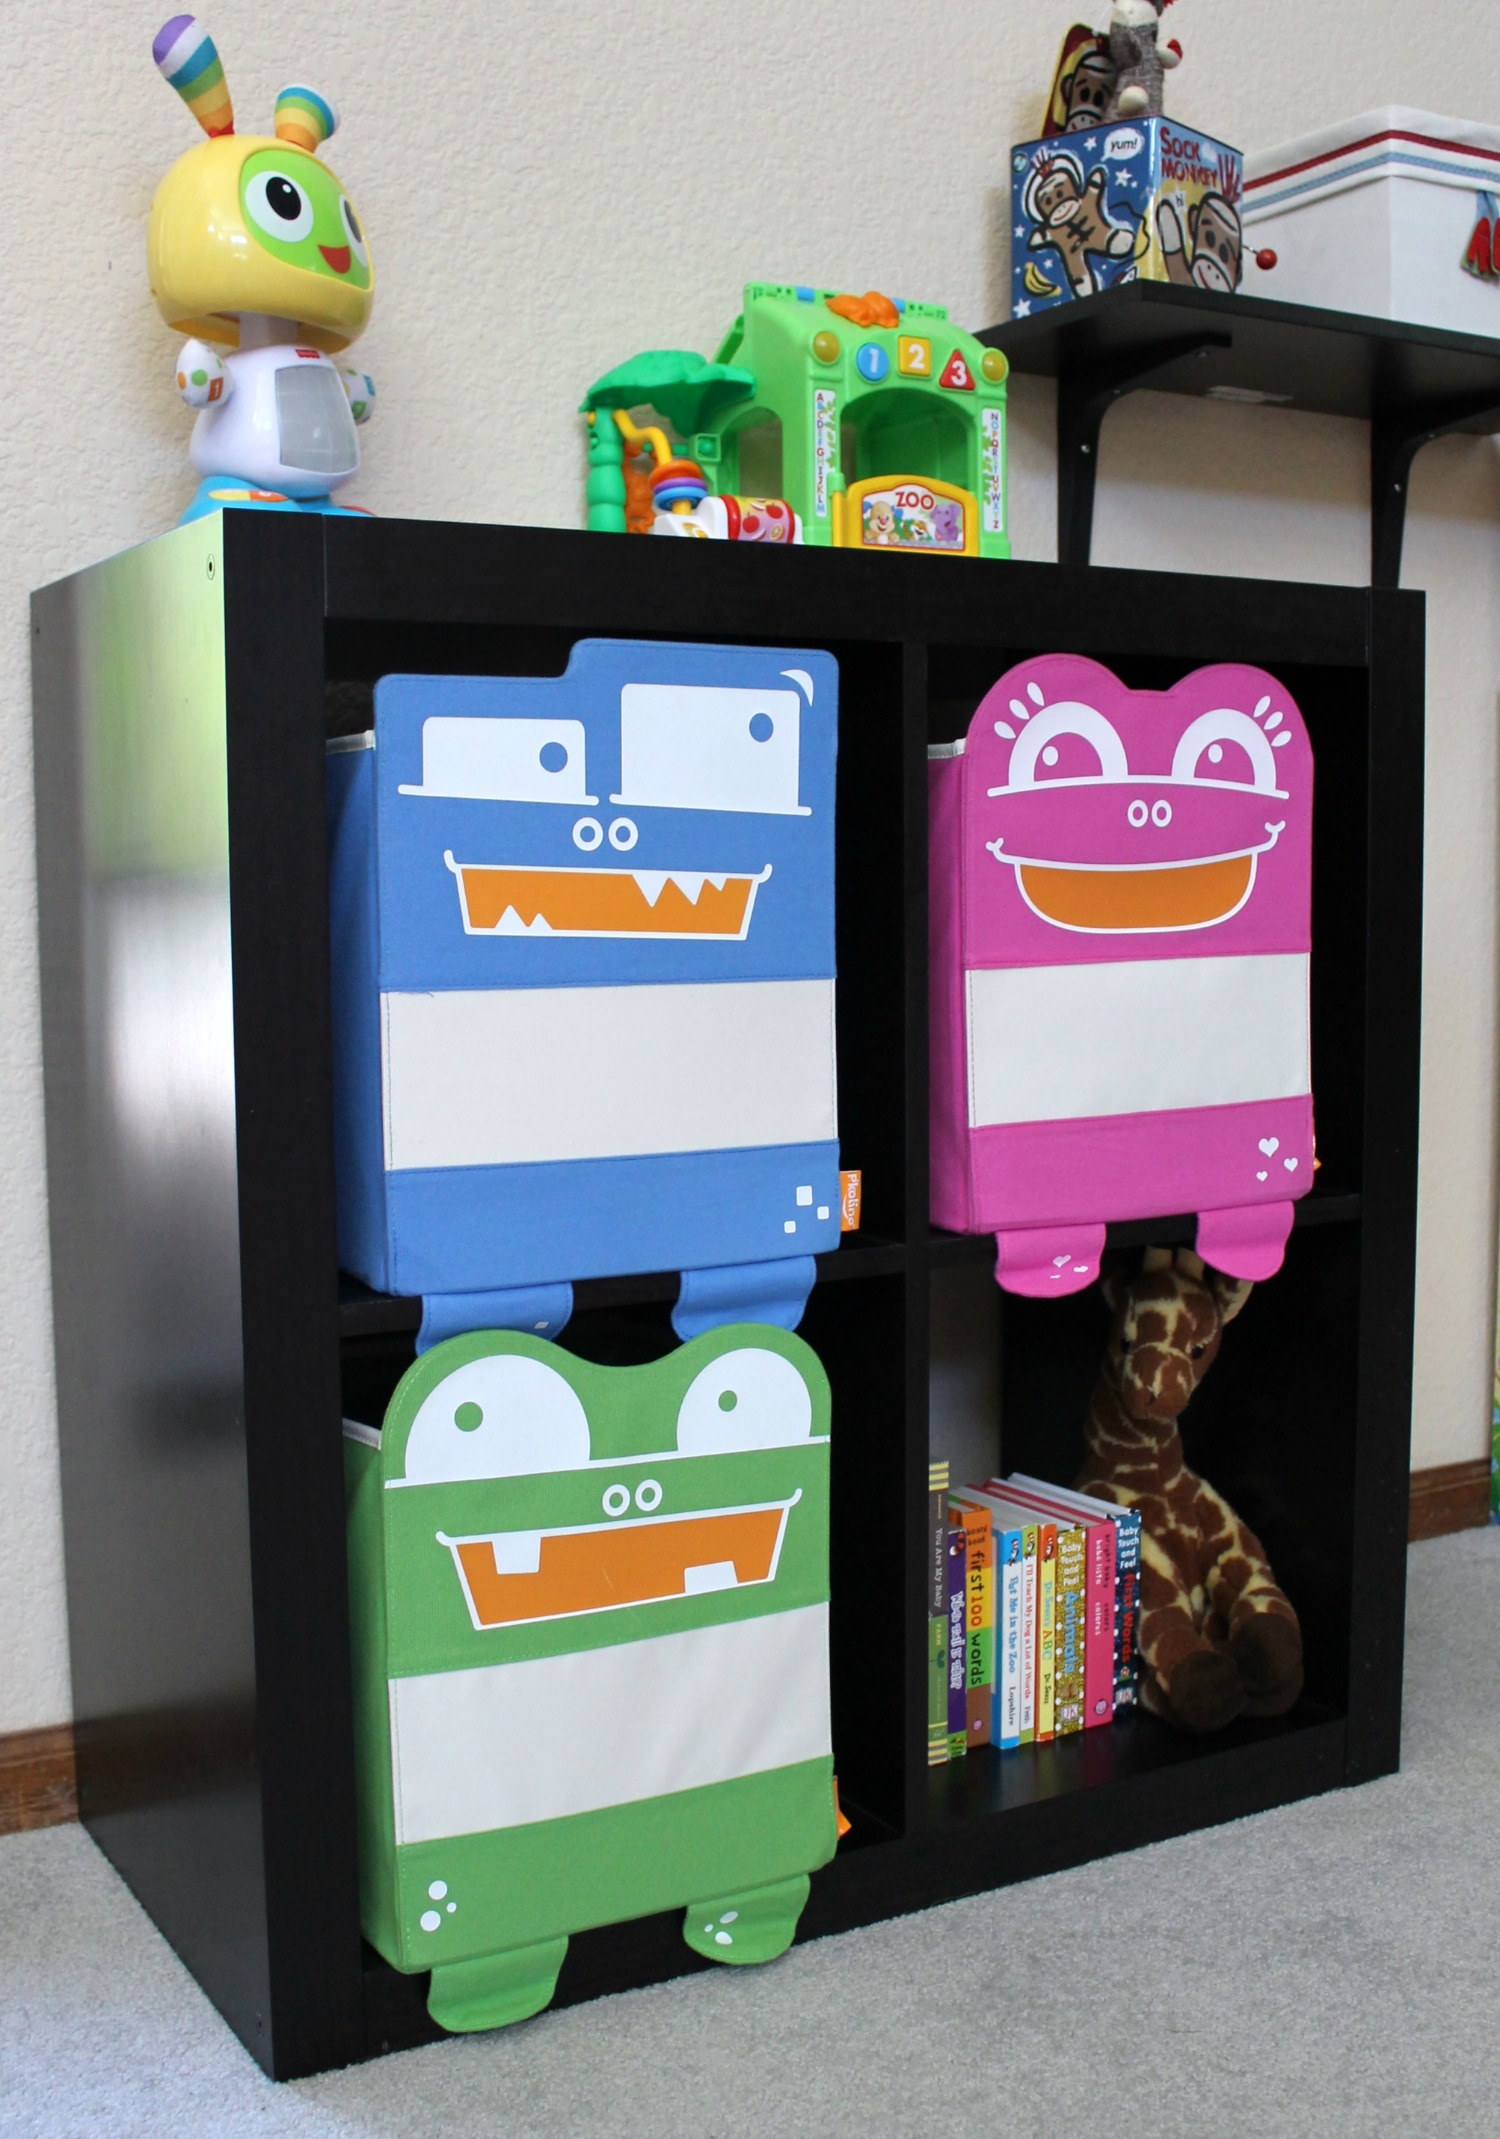 Fun Playroom Storage Ideas That Kids Will Adore